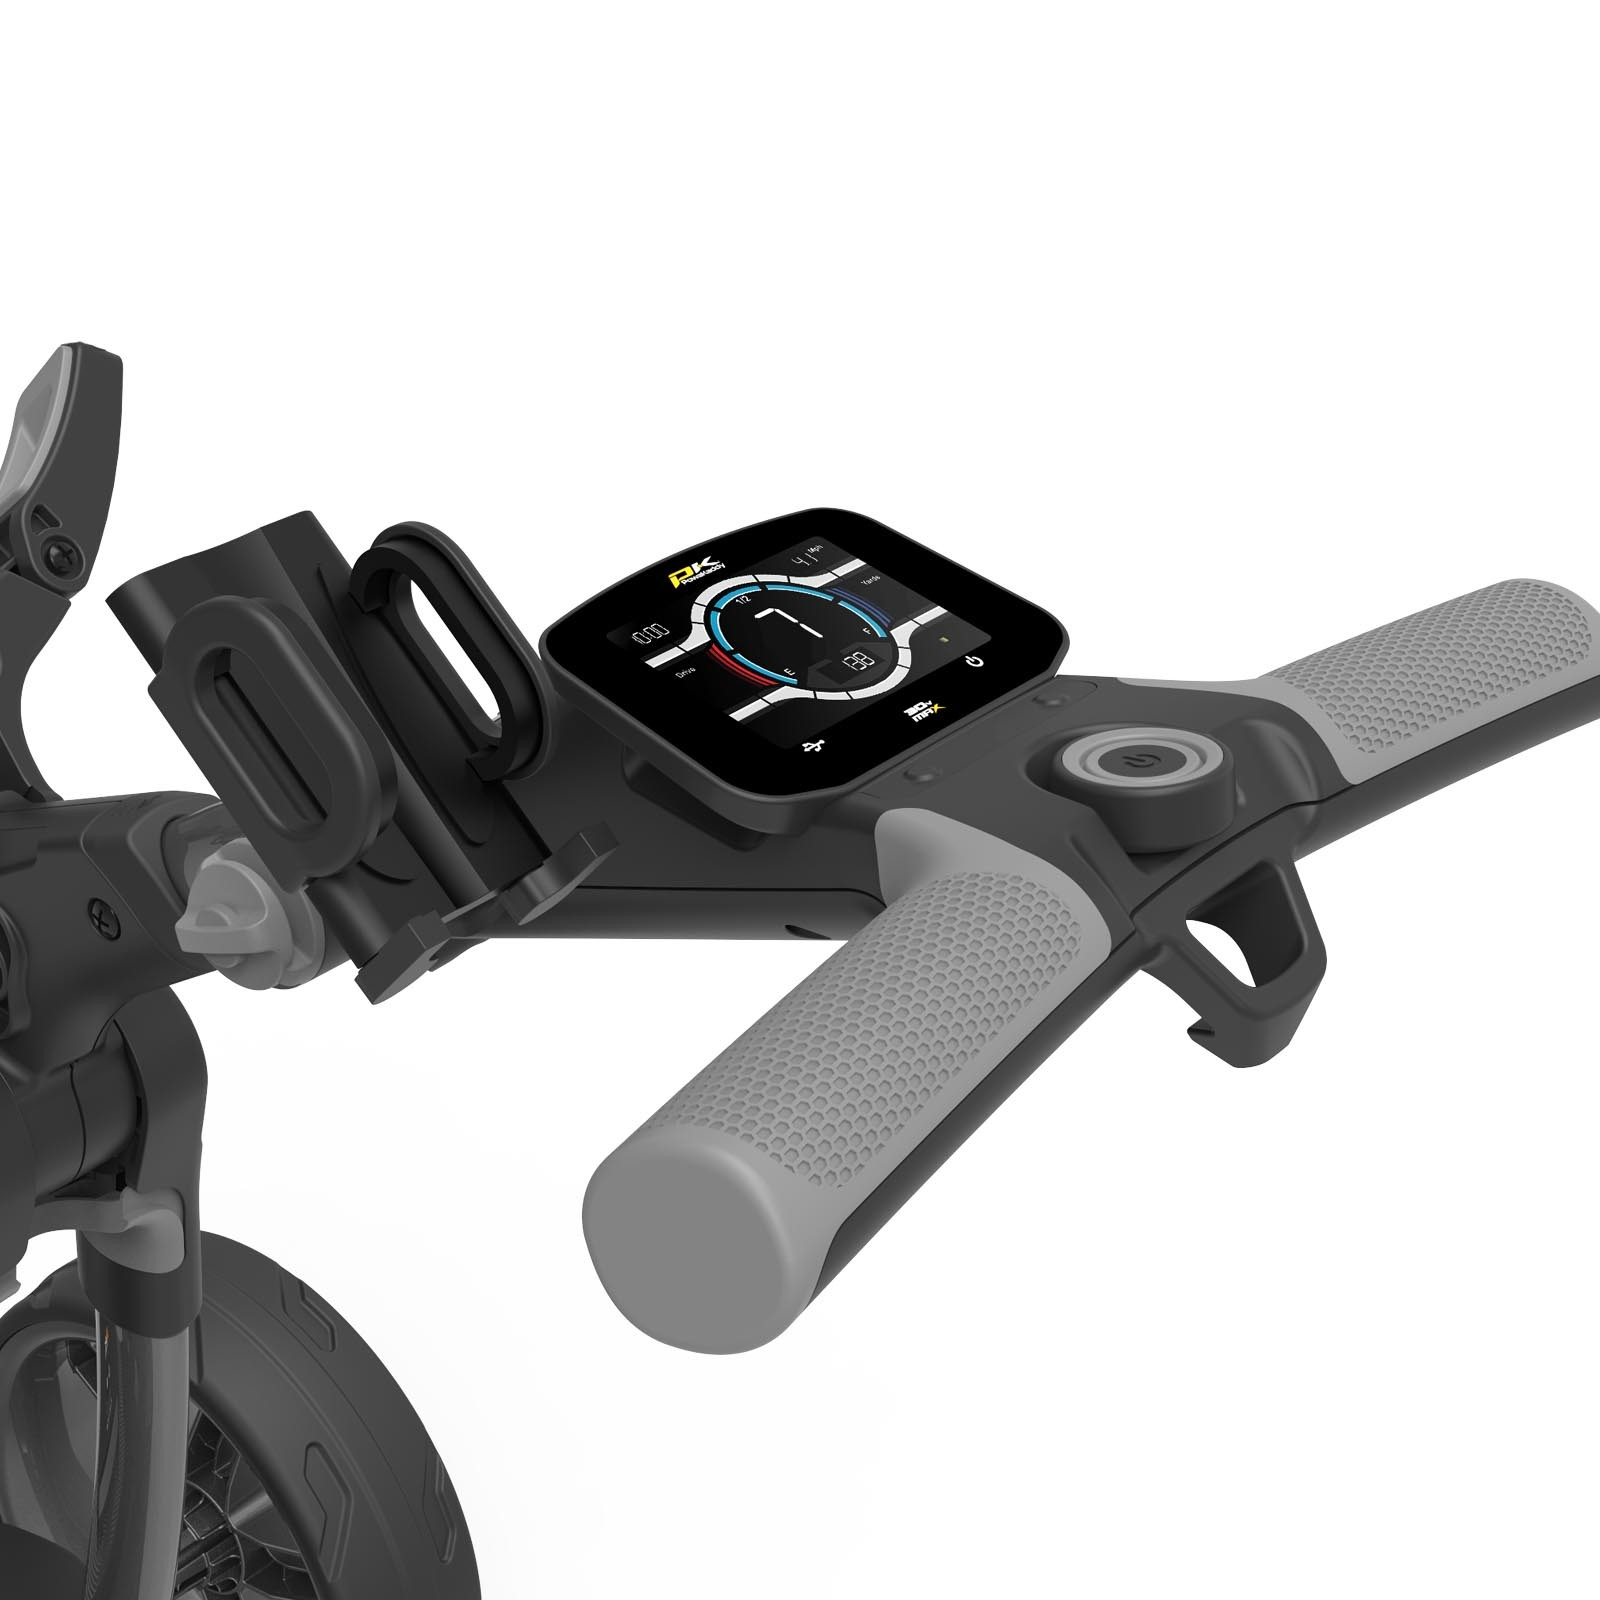 Powakaddy GPS & Smartphone Holder